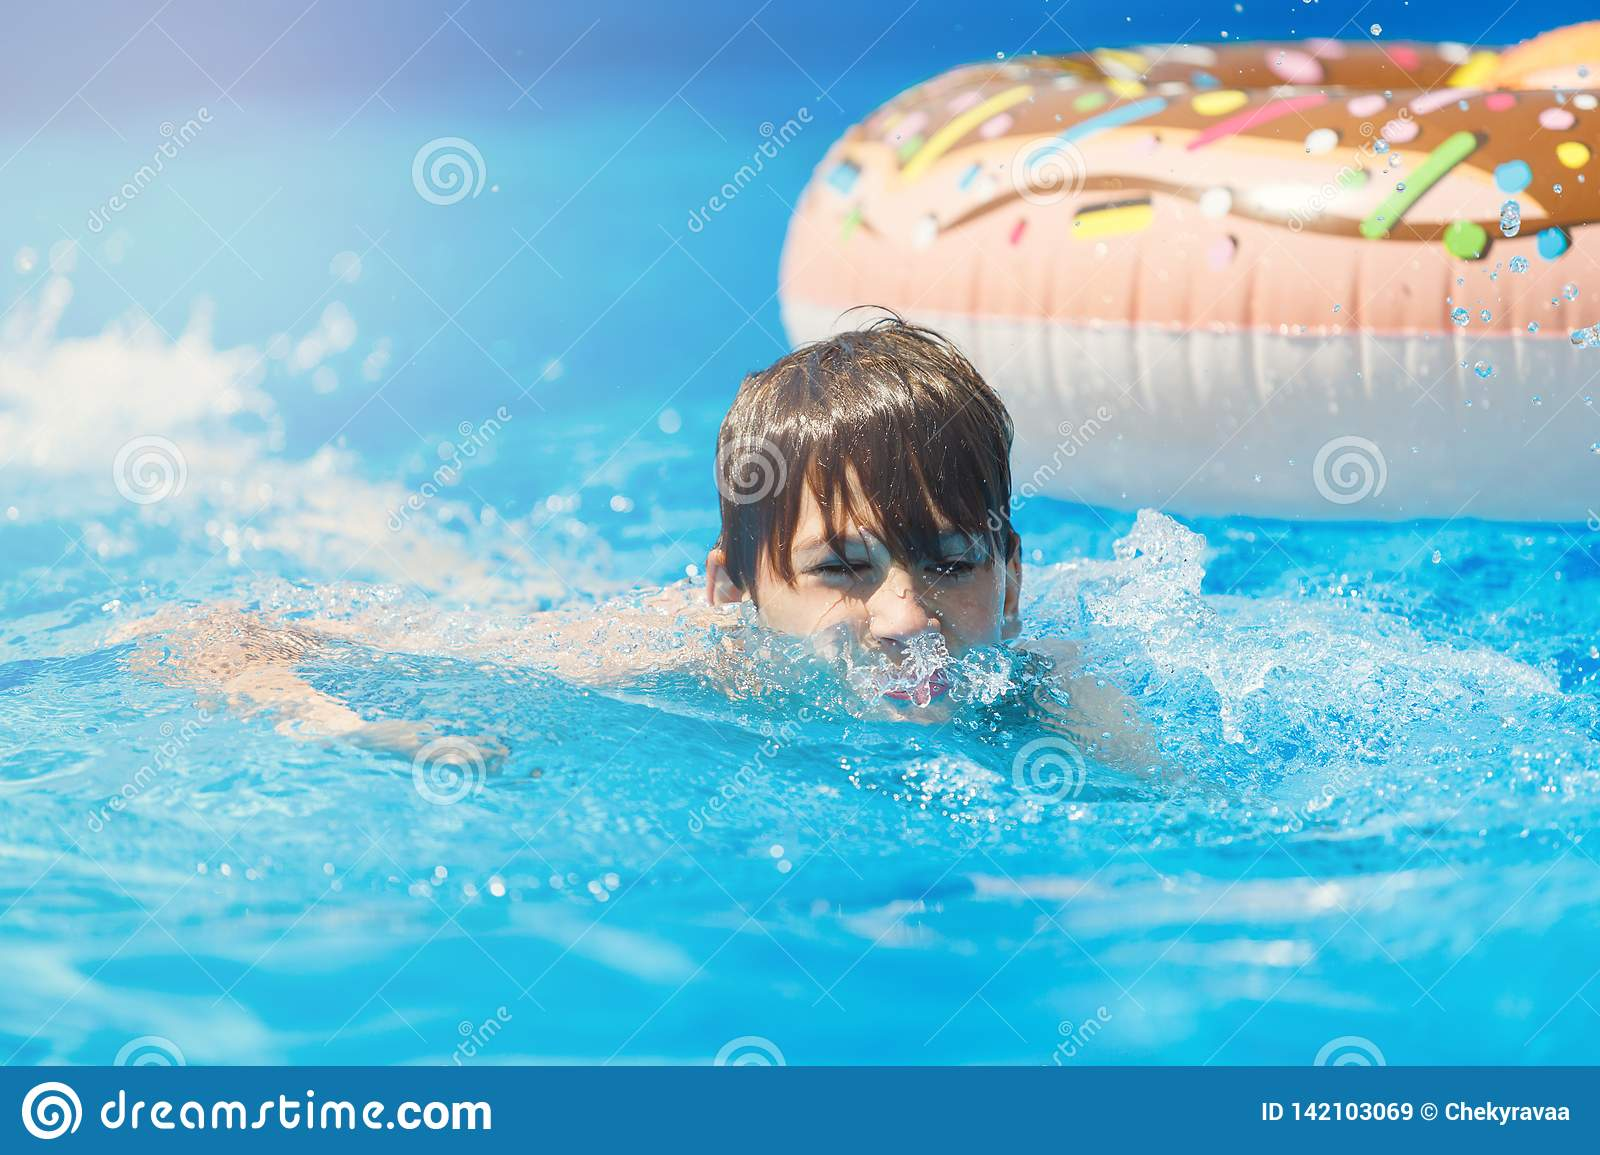 Cute sporty boy swims in the pool with donut ring and has fun, smiles, holds oranges. vacation with kids, holidays, active weekend